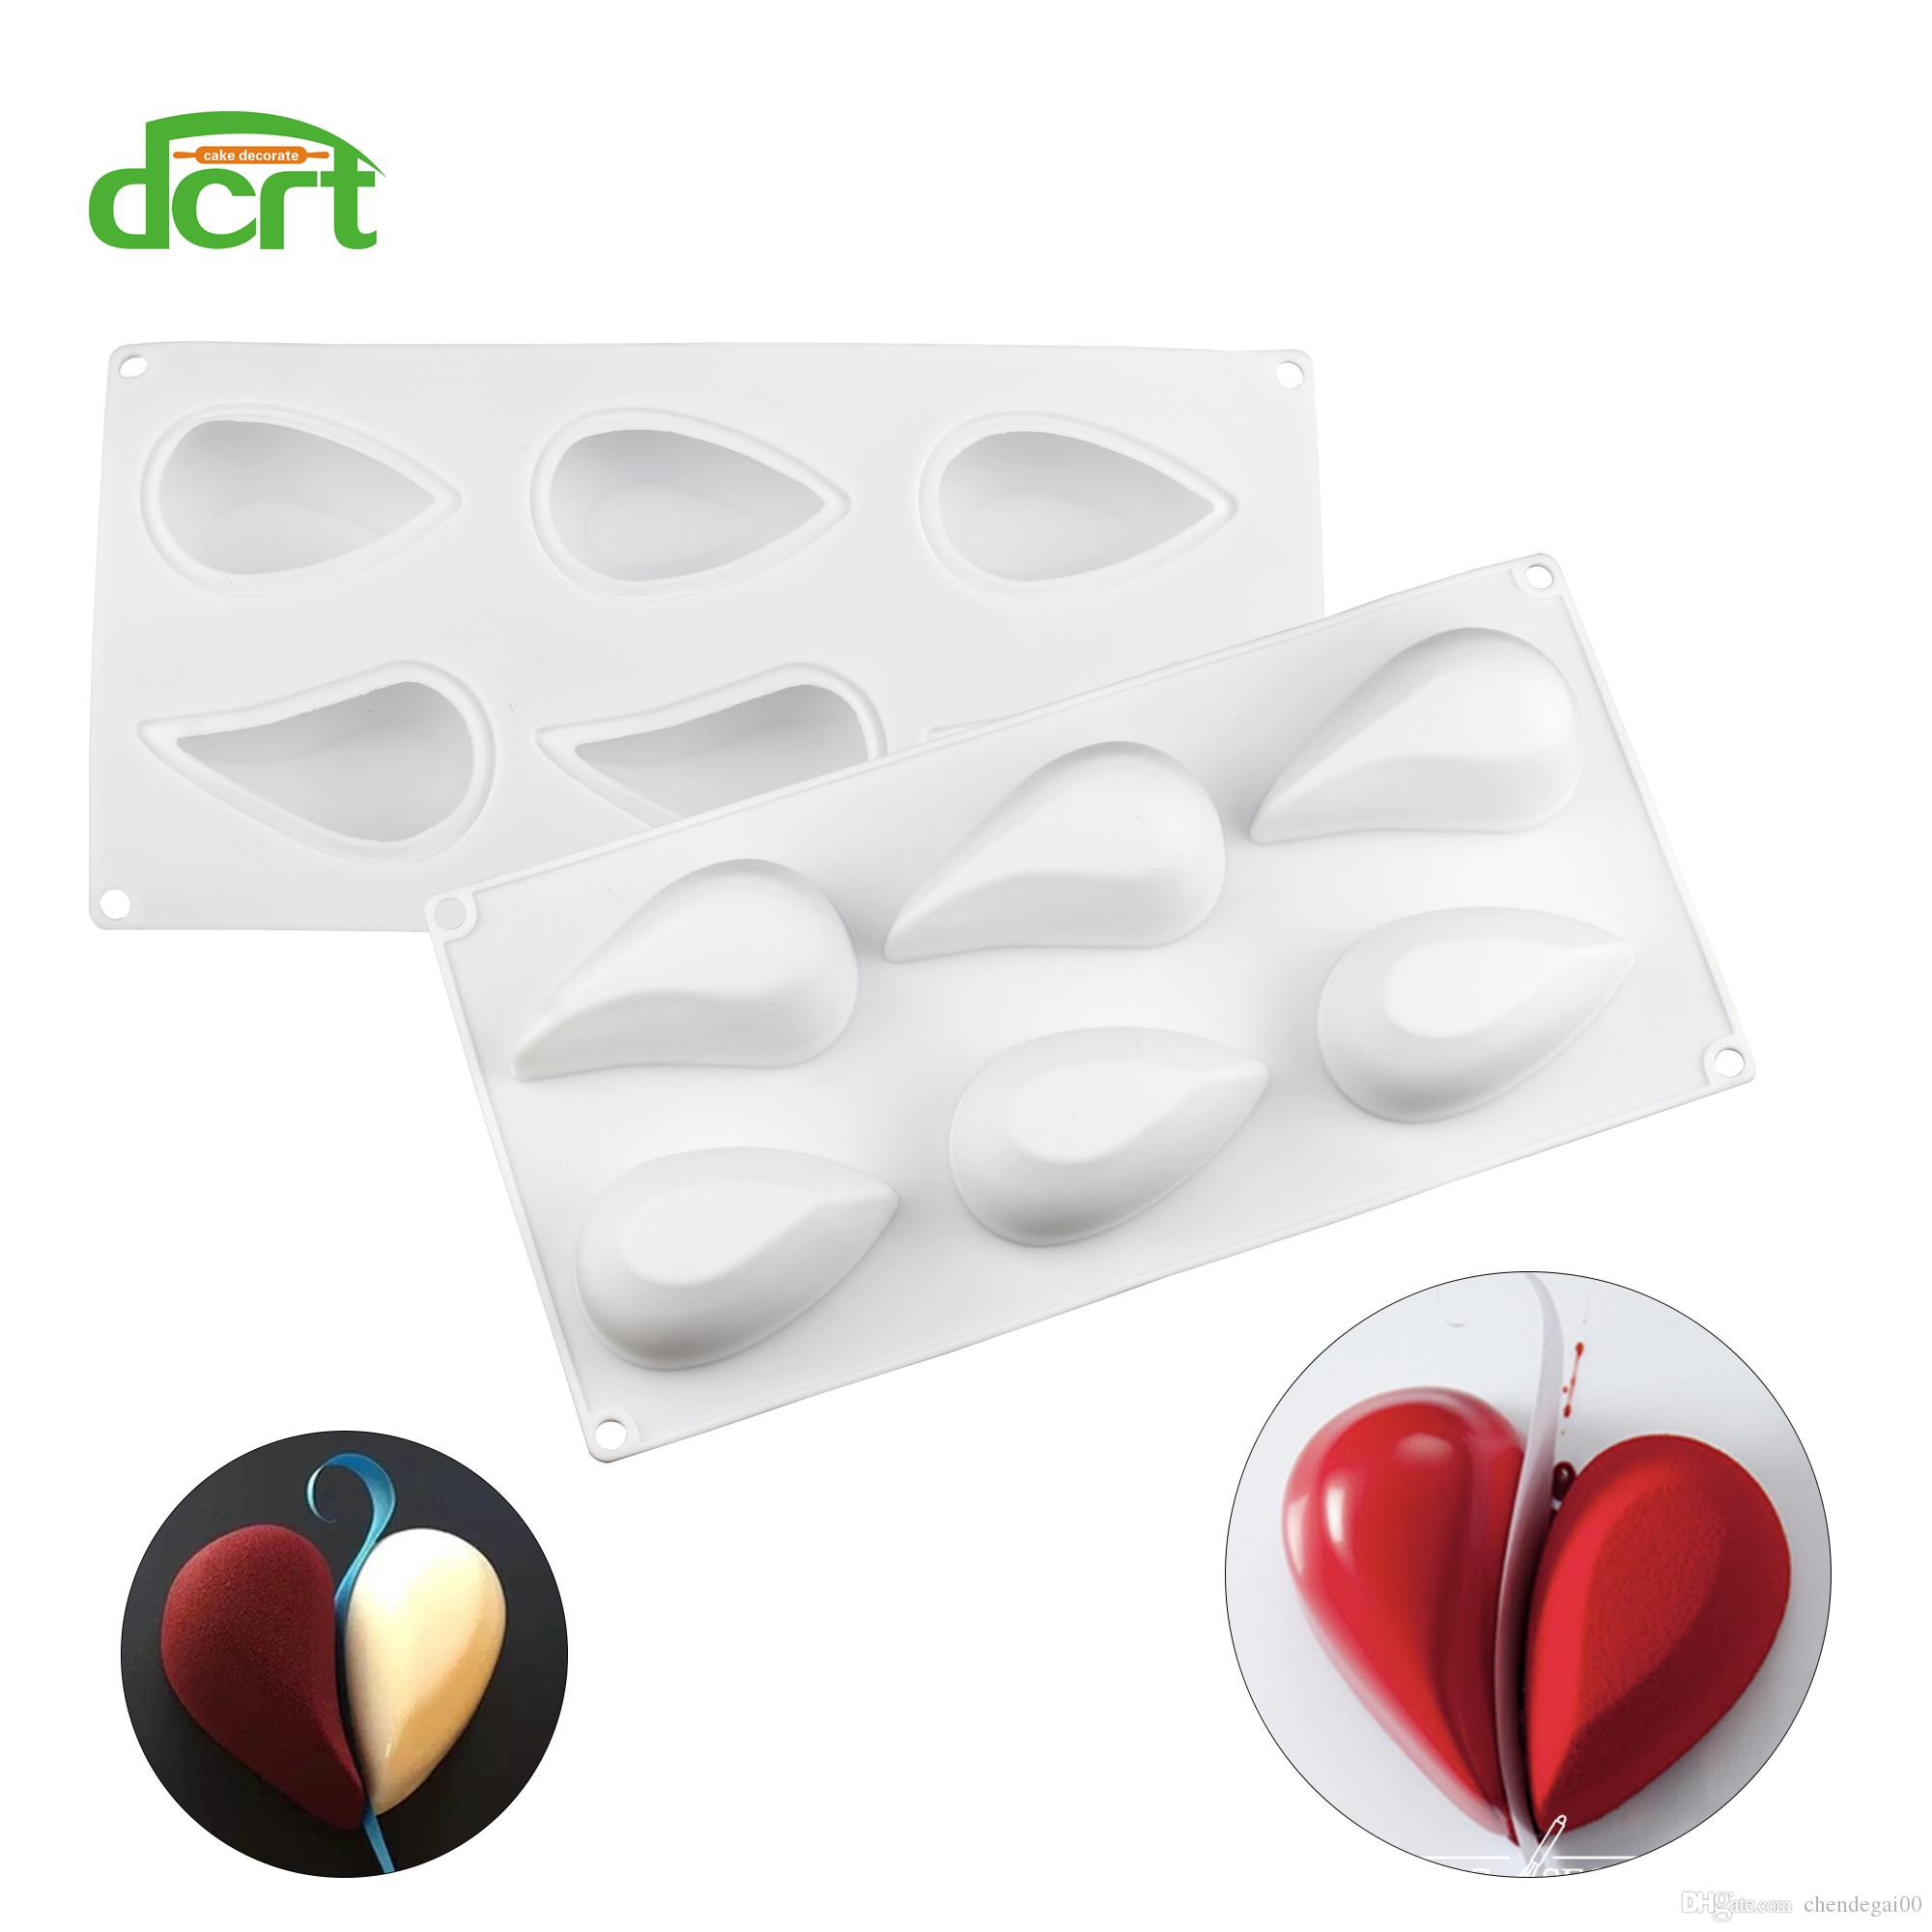 New Love Heart Shape Silicone Mould Cake Molds Mousse Dessert Chocolate Baking Mold Cake Decorating Tools